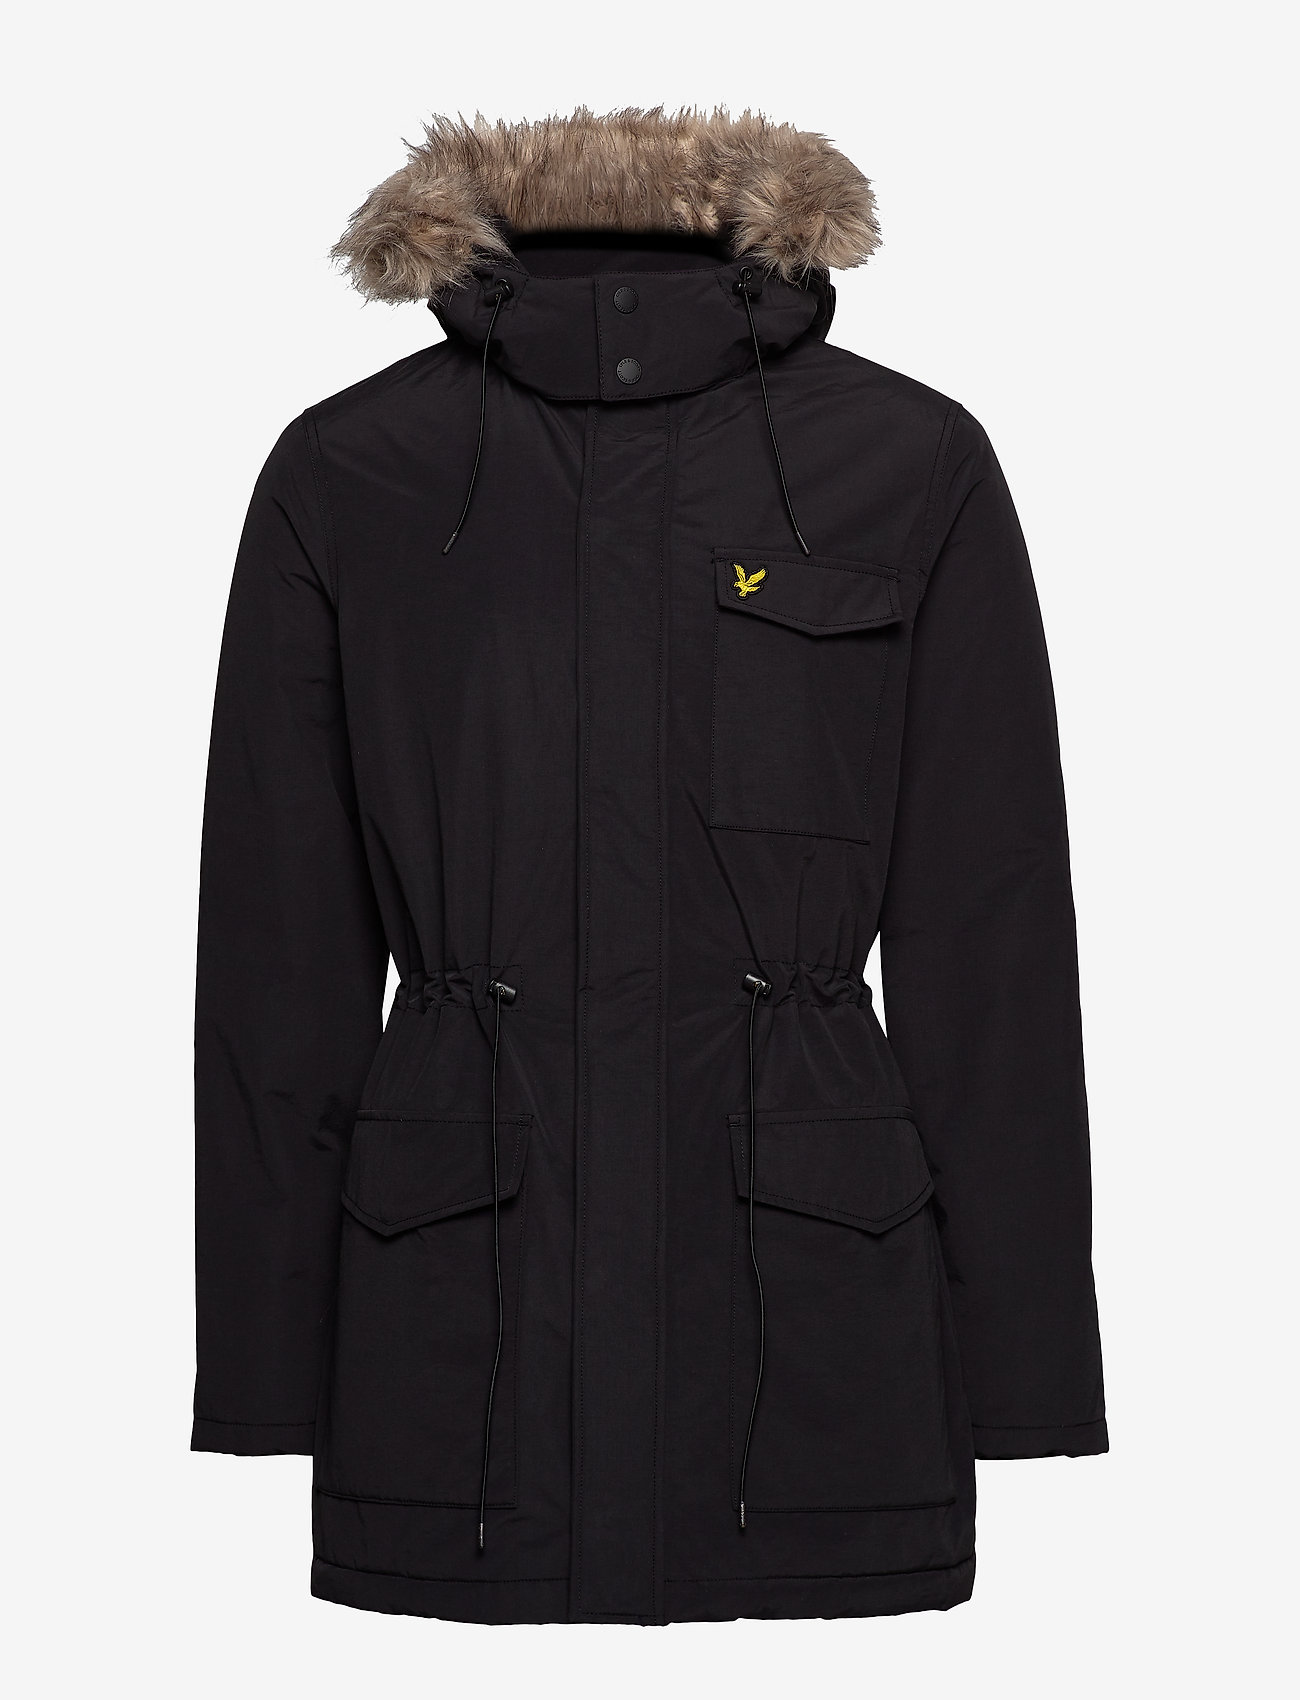 Lyle & Scott Winter Weight Microfleece Jacket - Jakker og frakker TRUE BLACK - Menn Klær